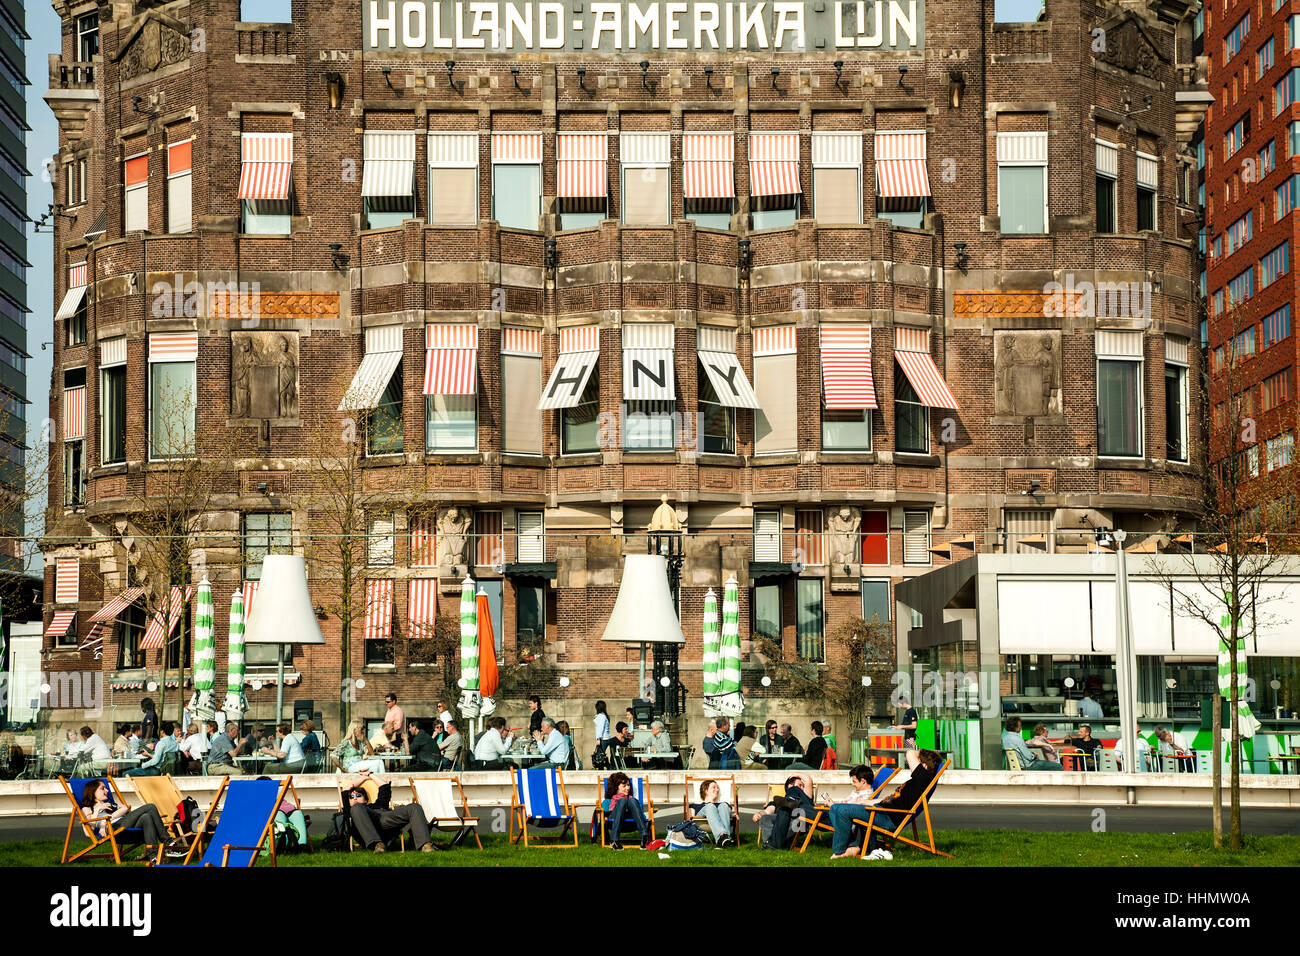 People lounging in front of Hotel New York (formerly Holland-Amerika Lijn building), Rotterdam, Netherlands - Stock Image